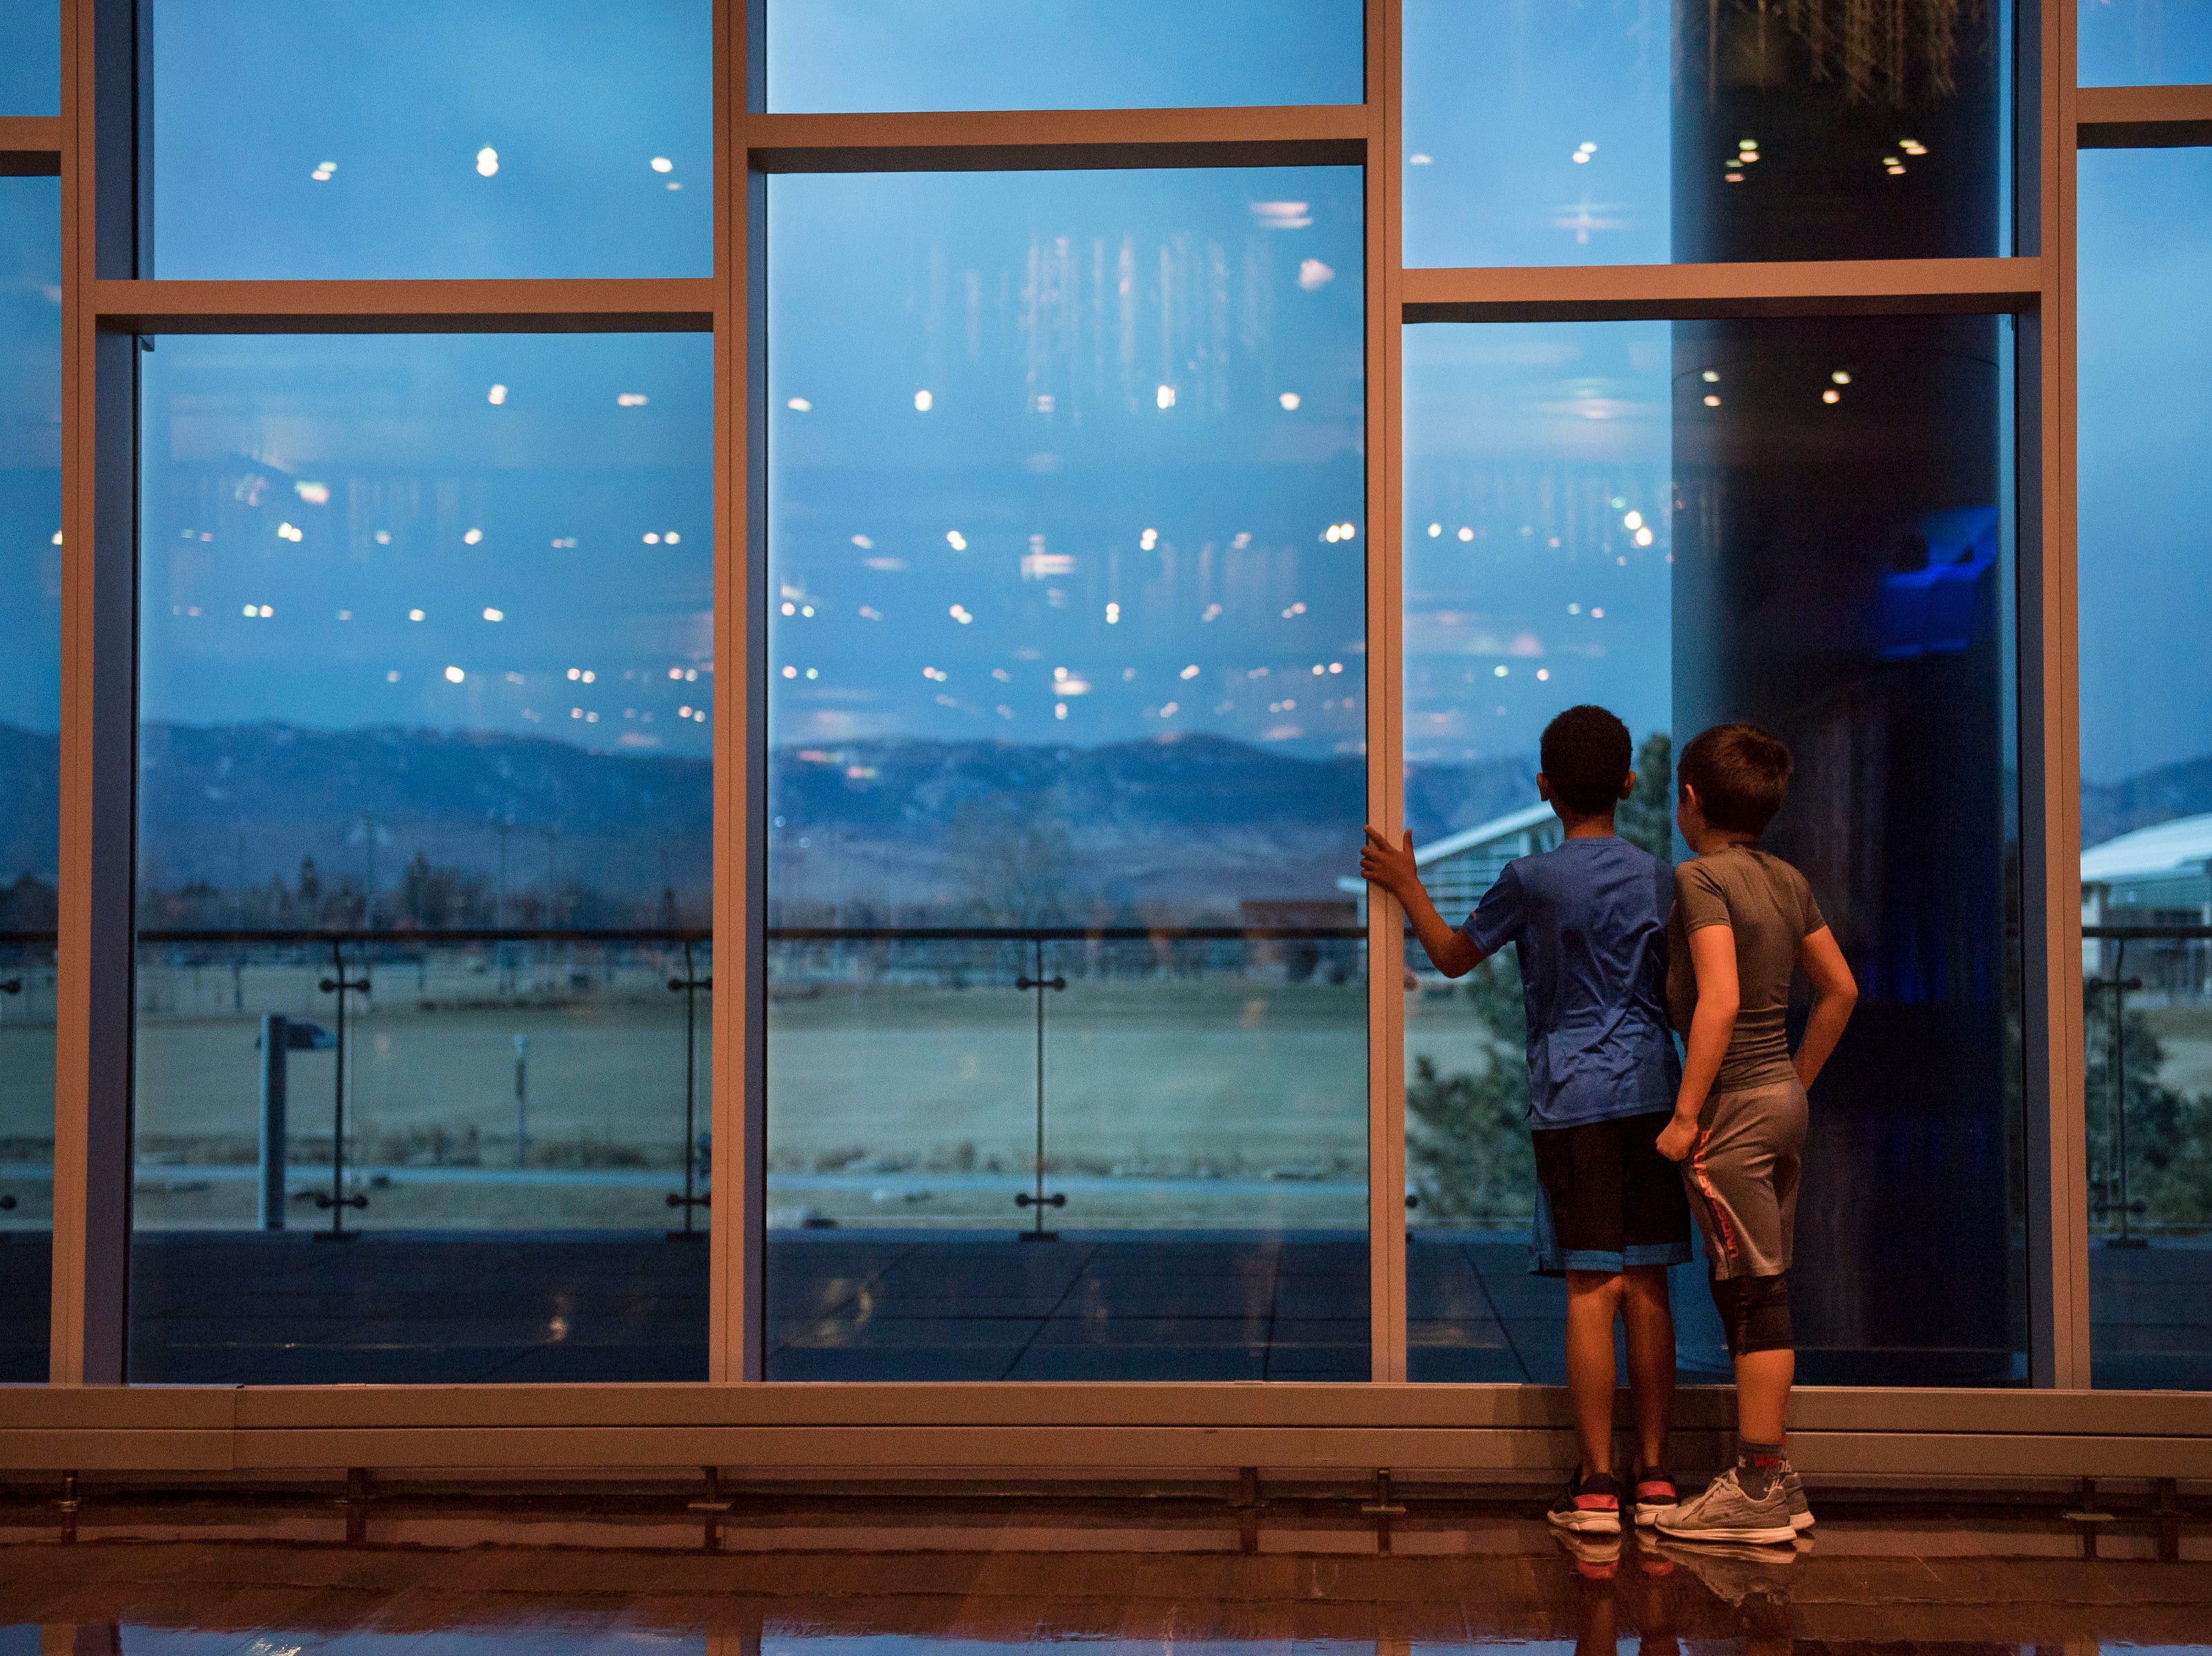 Zeke Shrull, 10, and Tristan Gonzales, 9, look out the West-facing windows while waiting for the Dr. Martin Luther King, Jr. March & Celebration to continue on Monday, Jan. 21, 2019, at the Lory Student Center on the Colorado State University campus in Fort Collins, Colo.